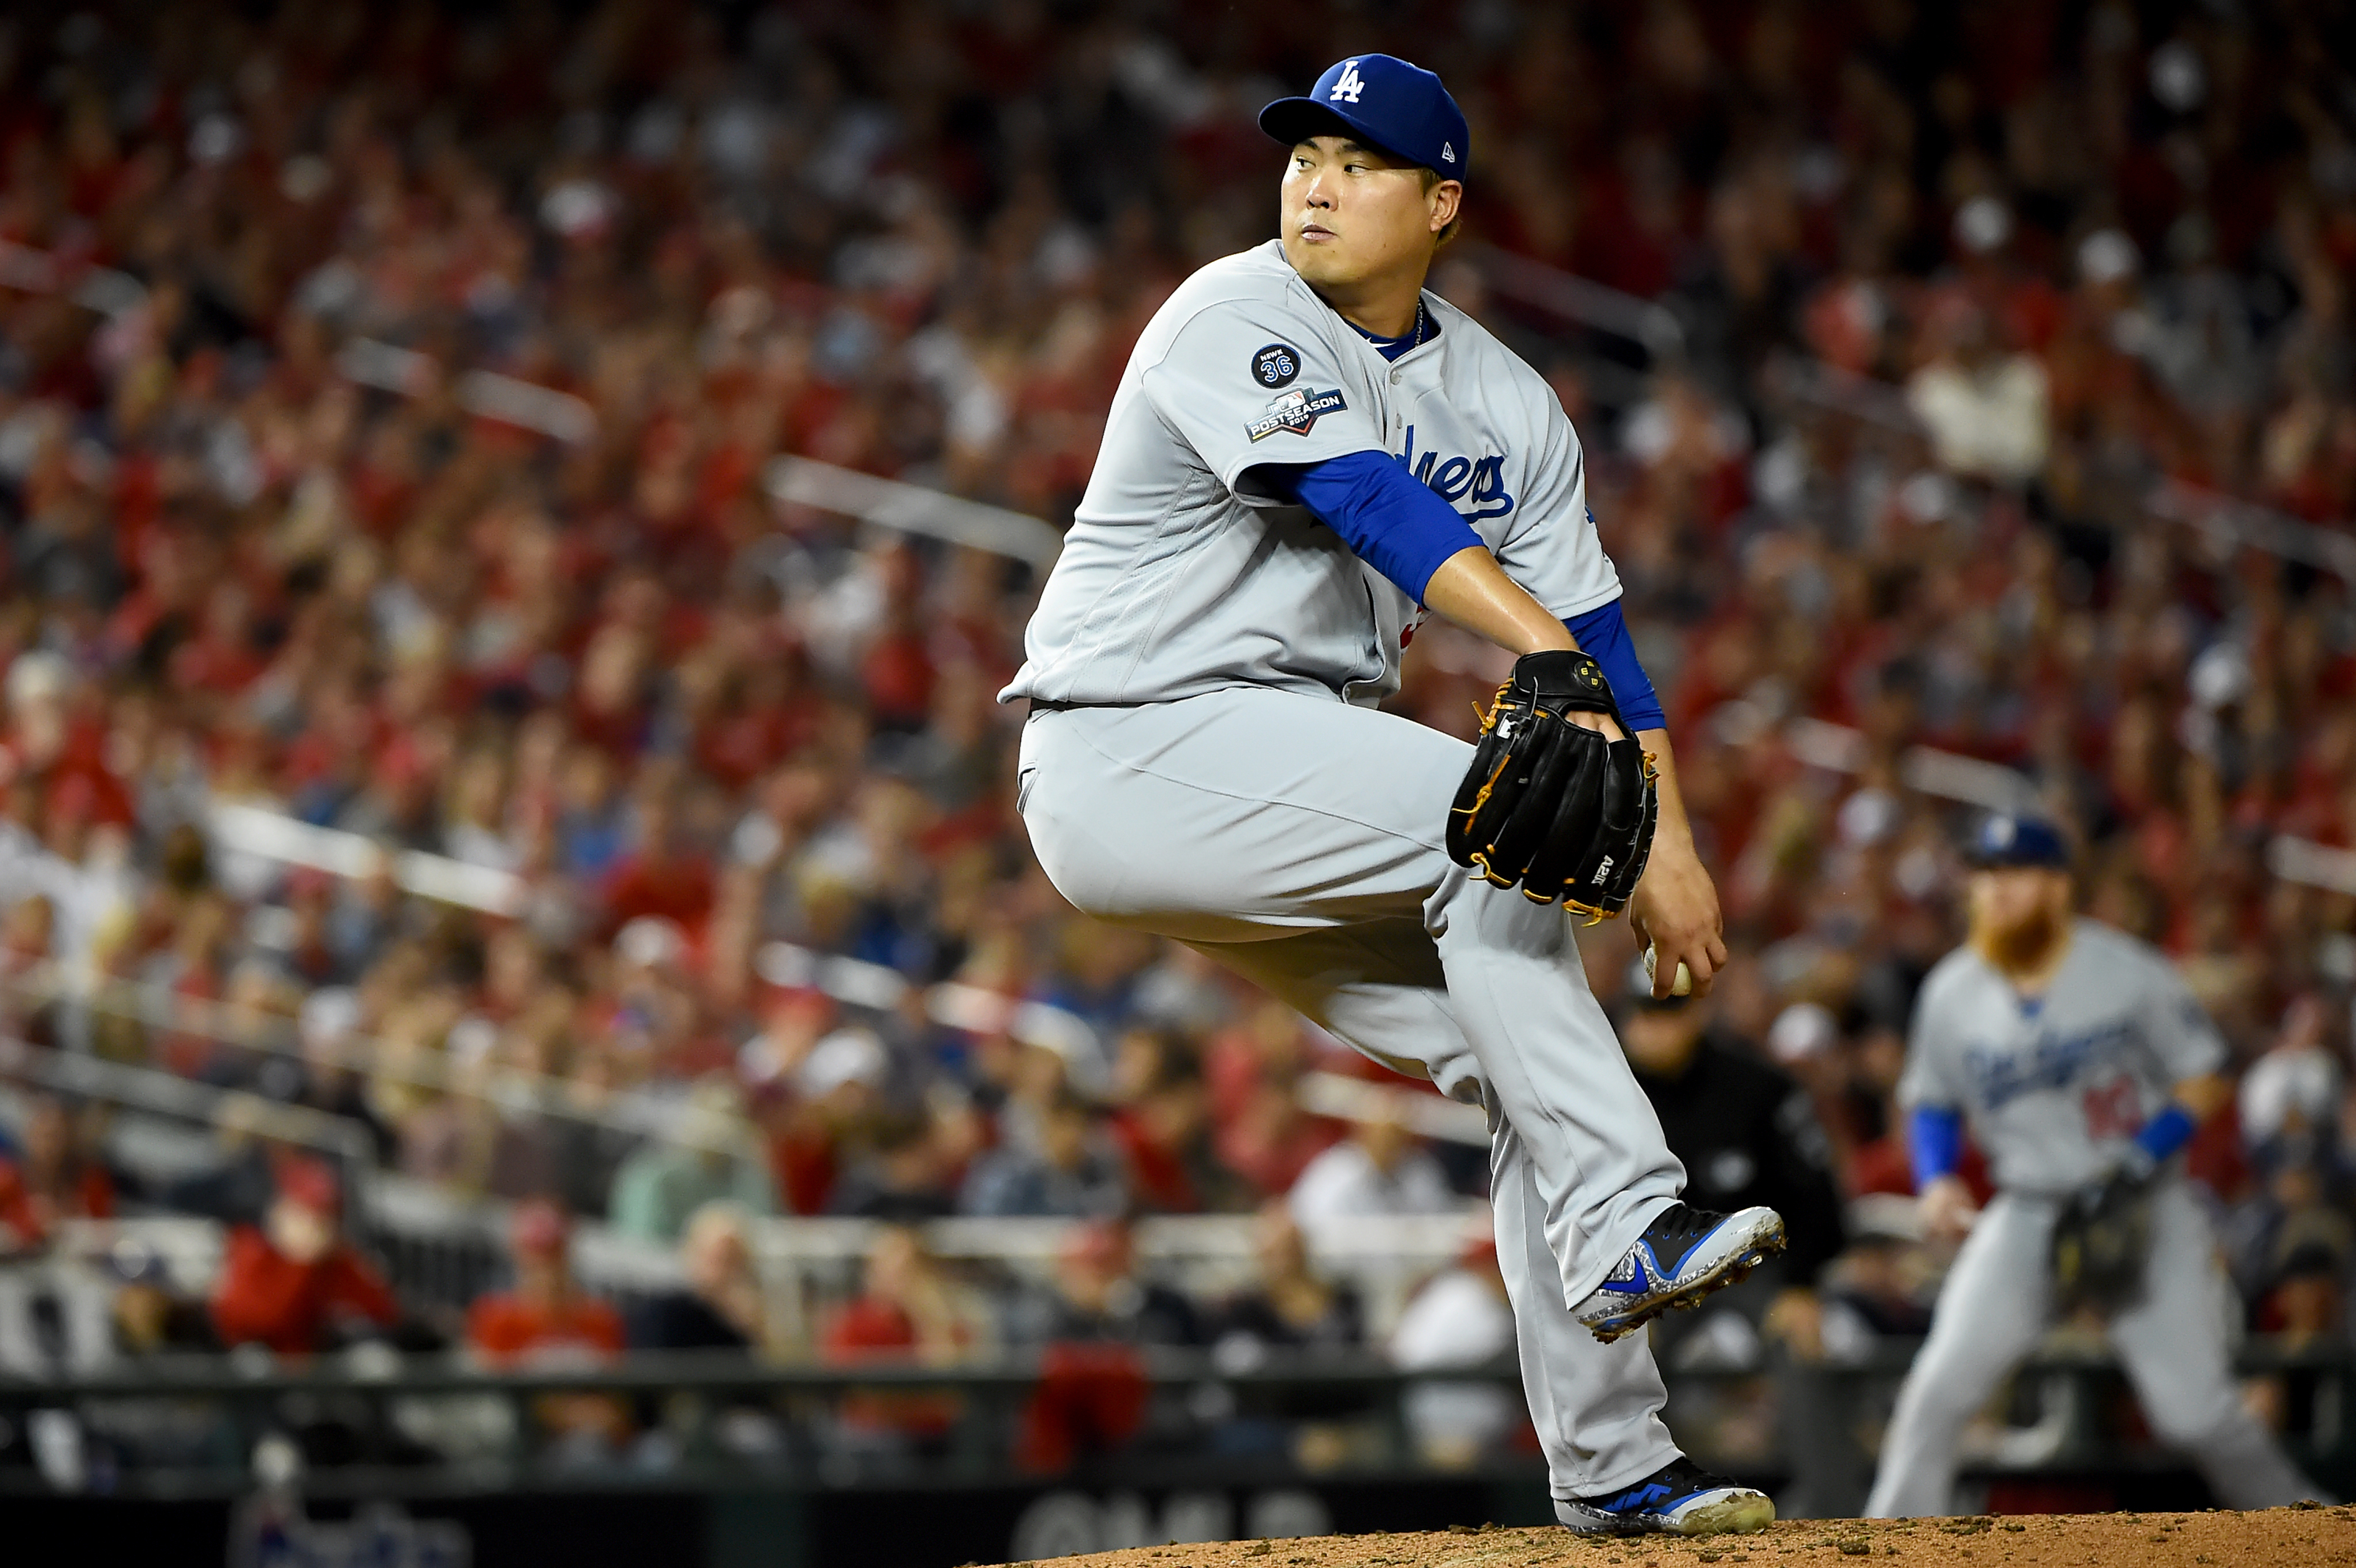 Toronto Blue Jays have completely overhauled their rotation